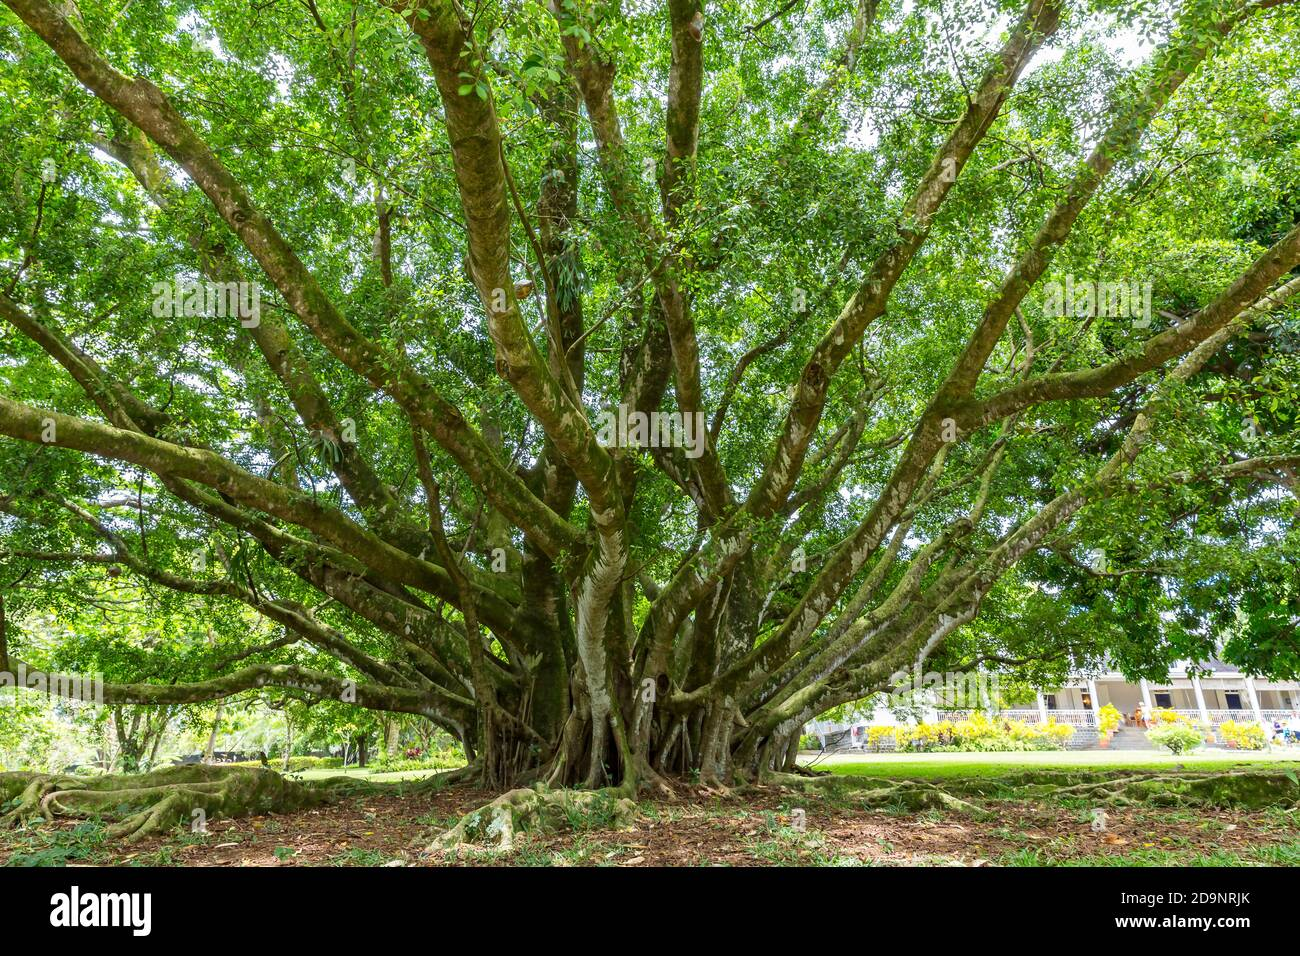 Banyan tree, garden with palm trees and exotic plants, rum distillery Le Saint Aubin, founded in 1819, Saint Aubin, Mauritius, Africa, Indian Ocean Stock Photo